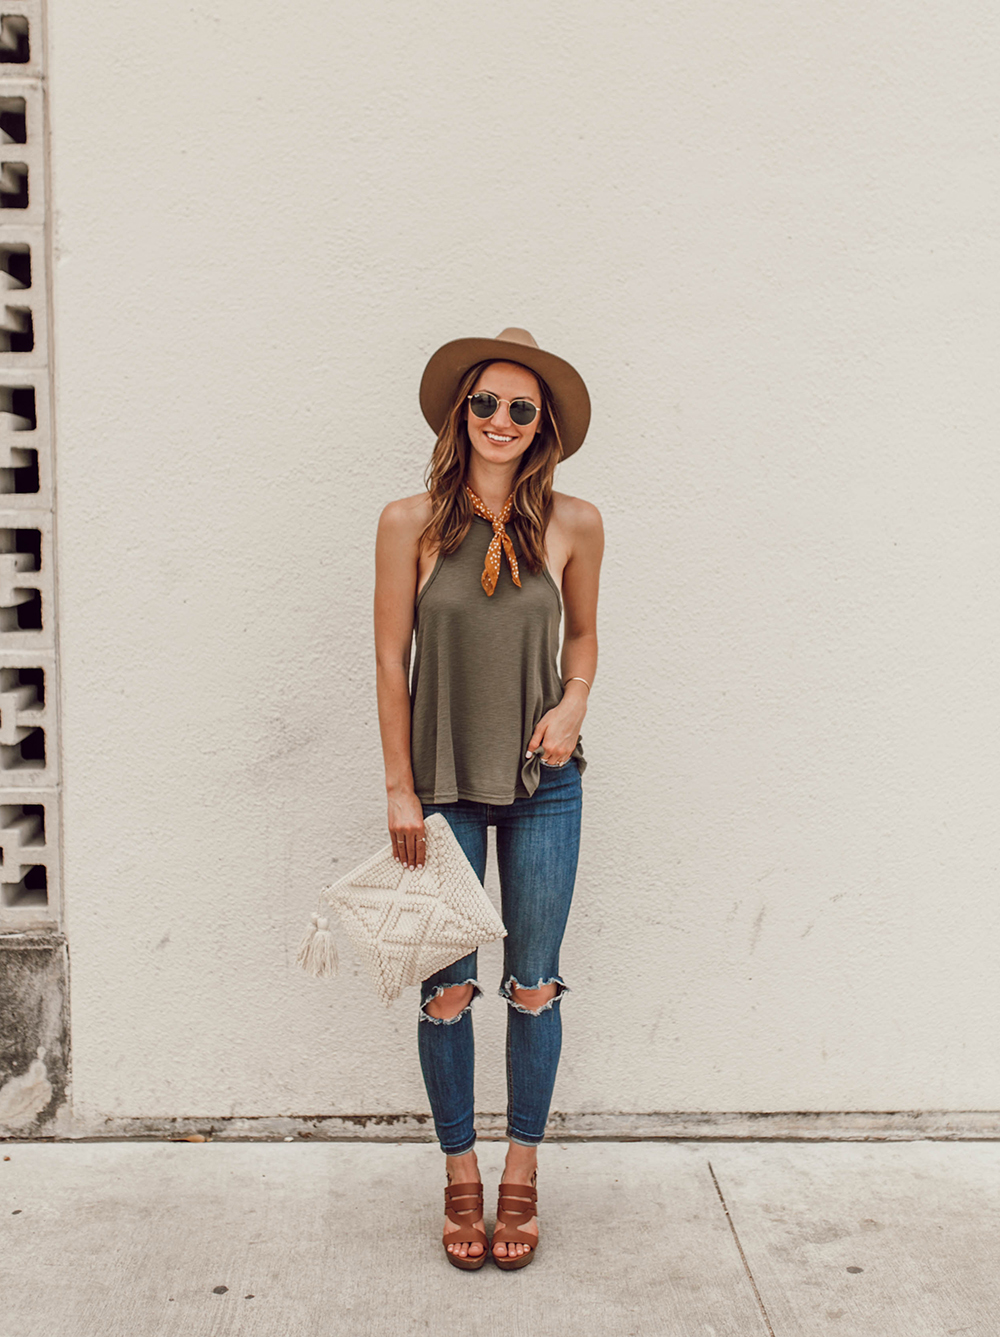 livvyland-blog-olivia-watson-austin-texas-fashion-style-blogger-sole-society-tan-sandal-wedges-3